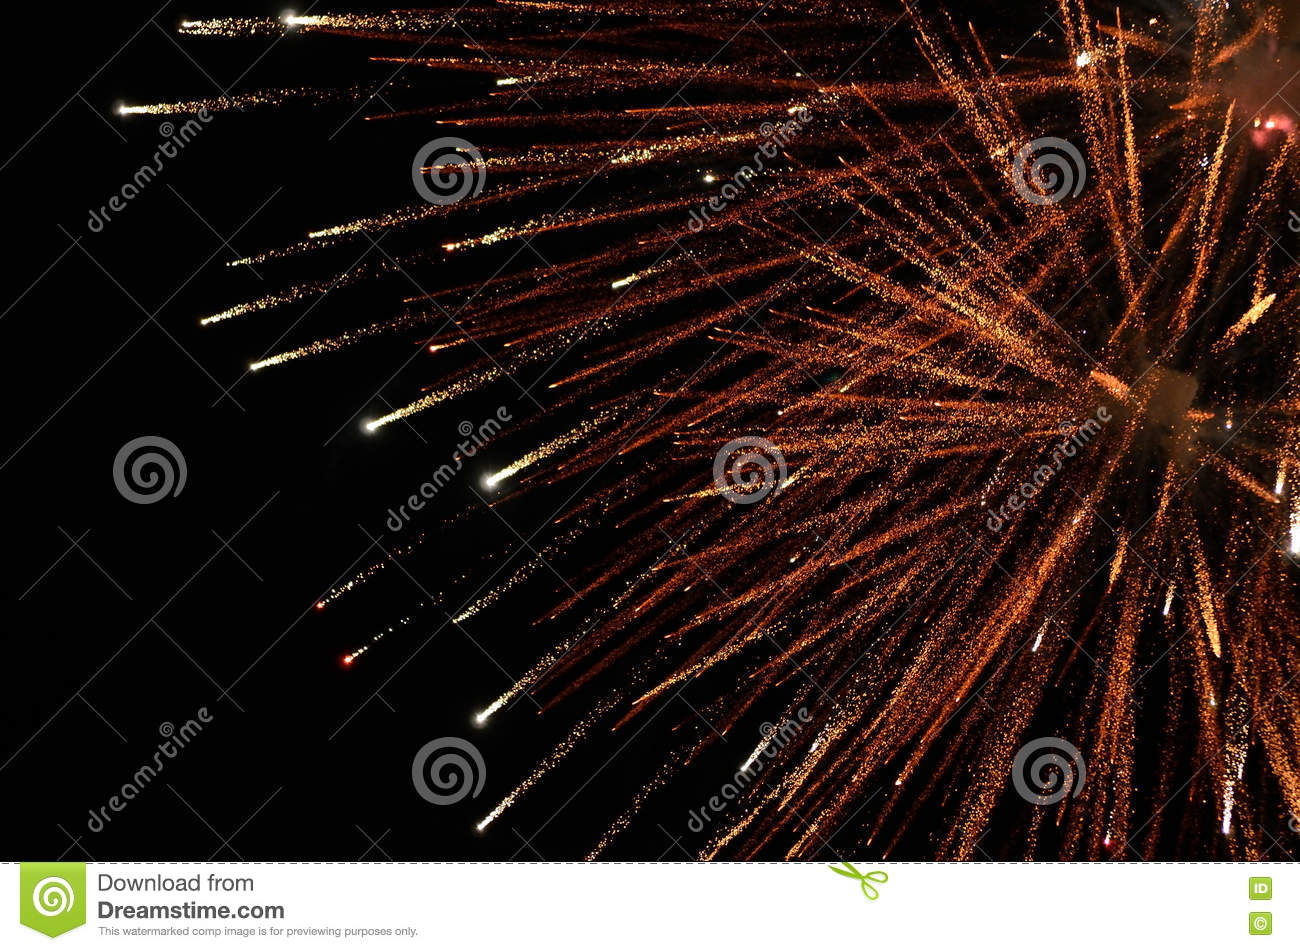 Stock image of fireworks